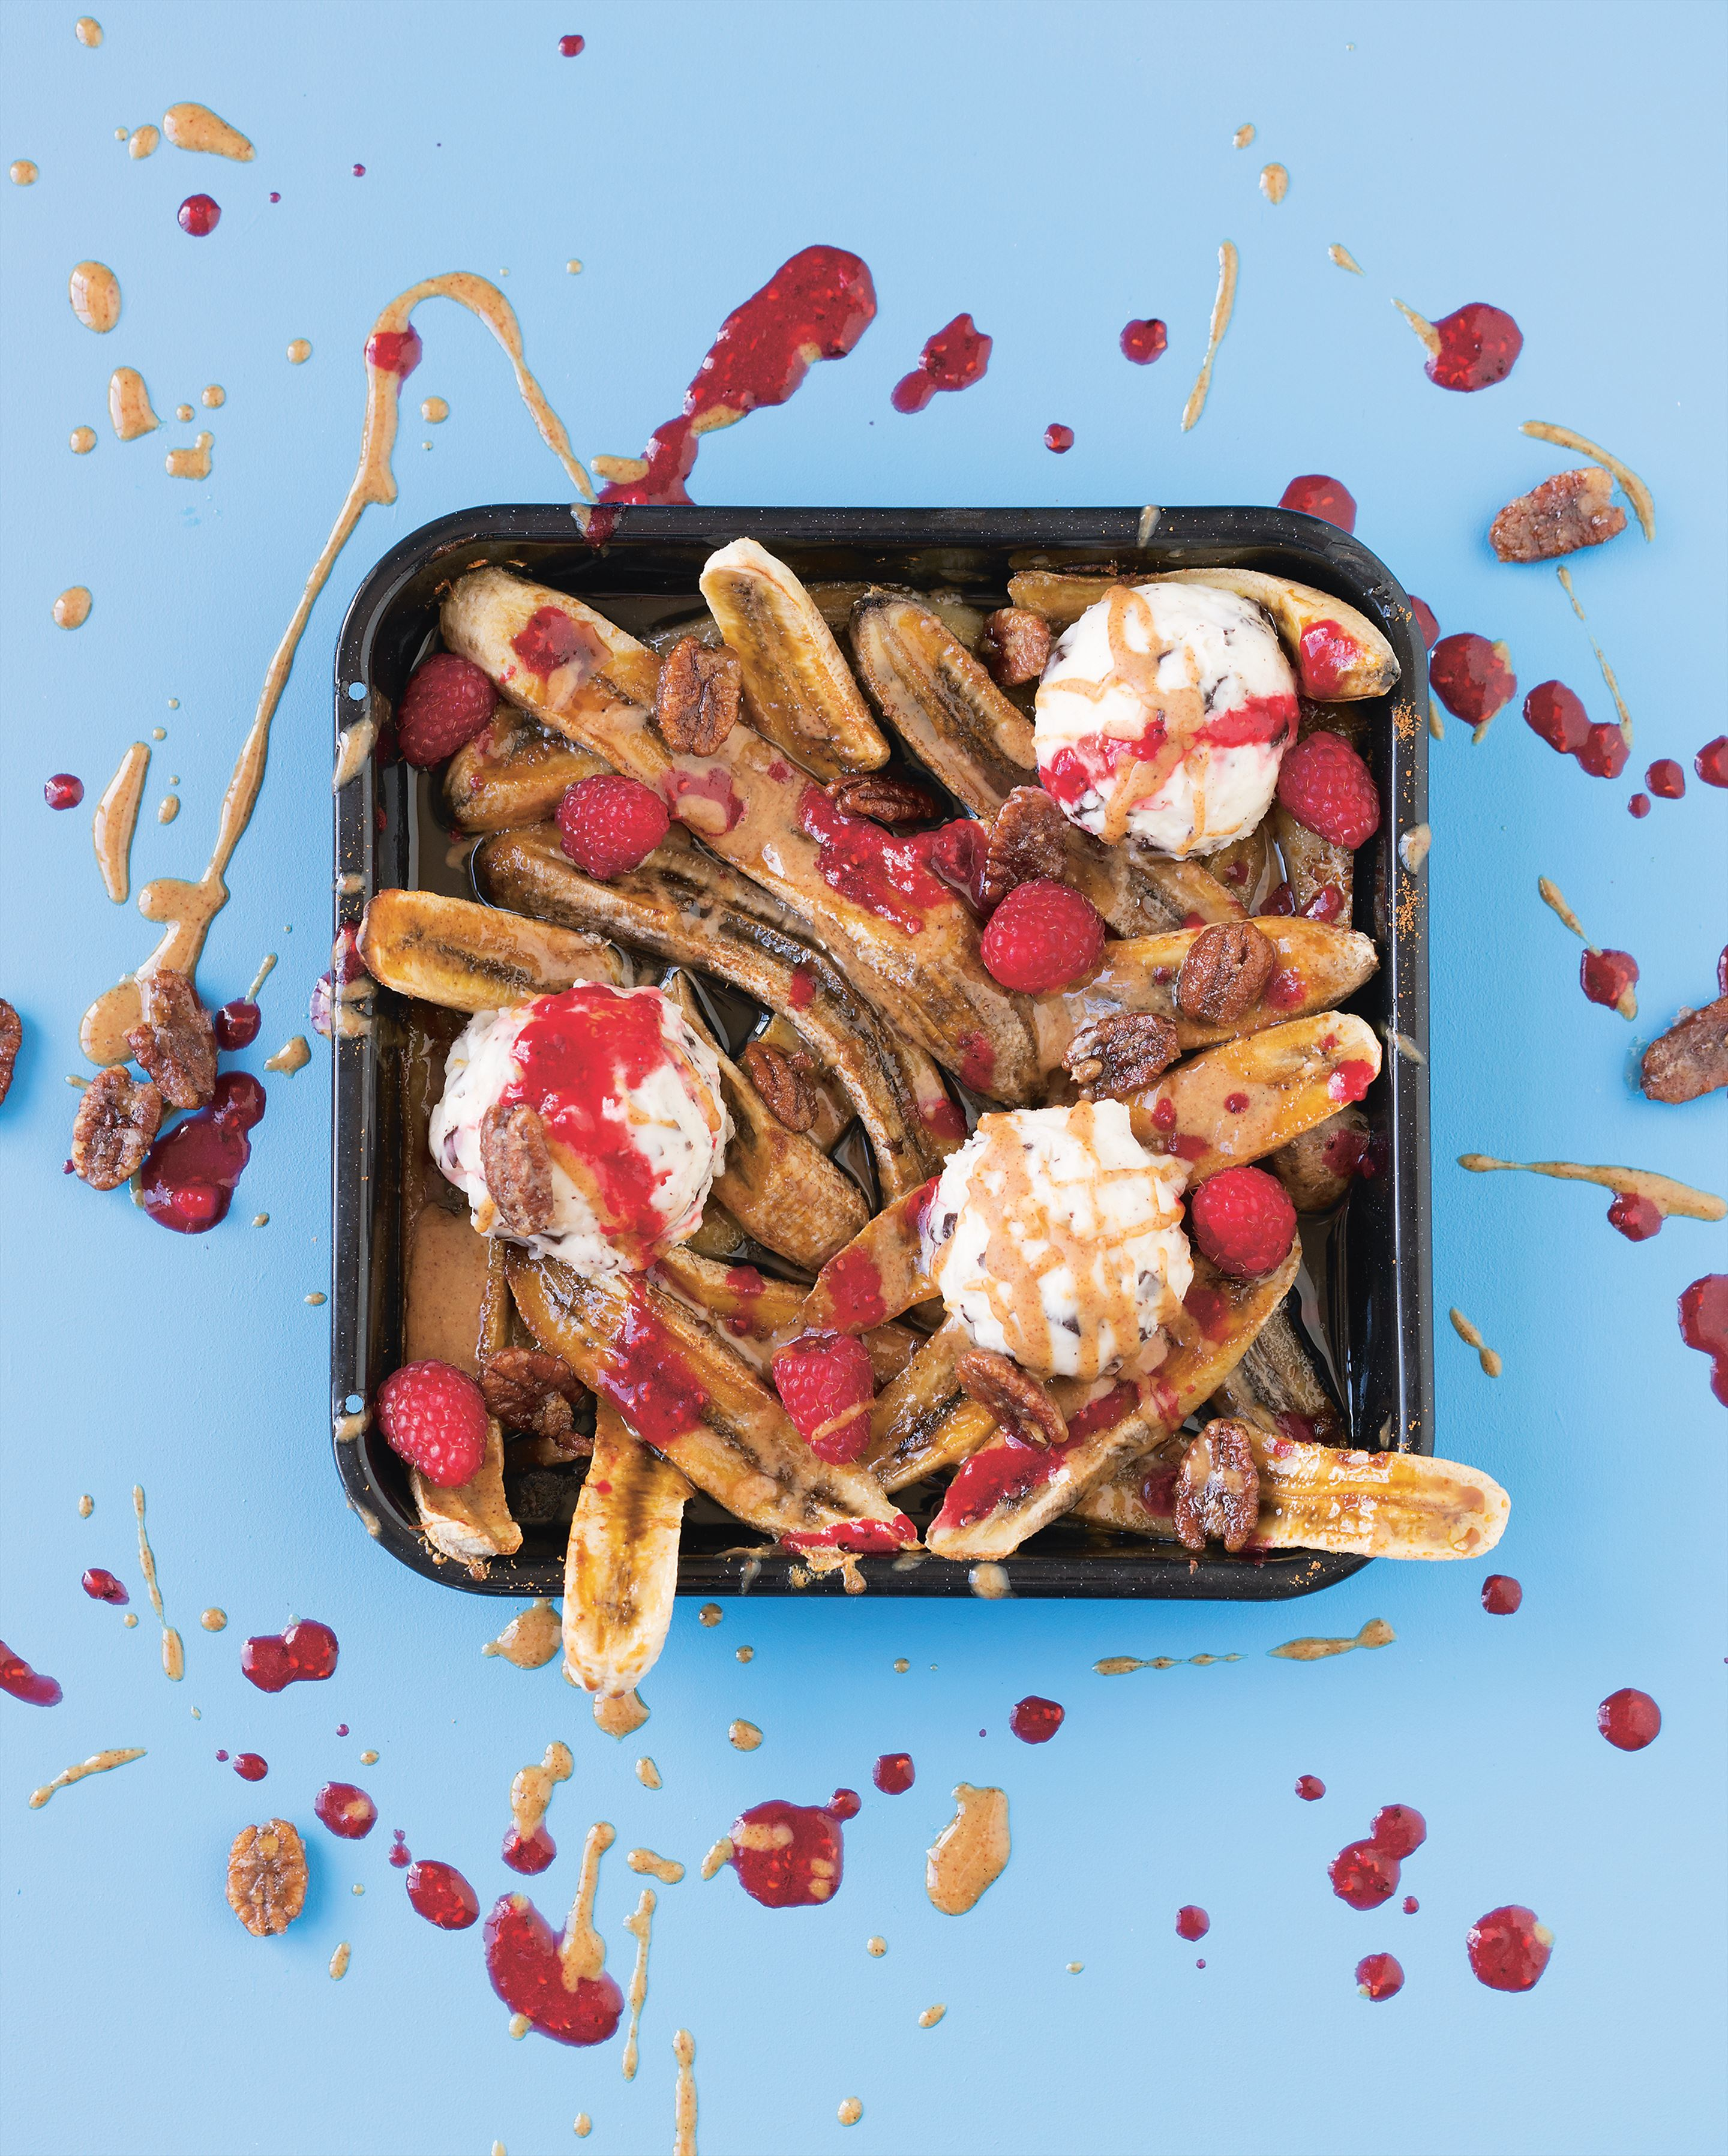 Banana split bake with candied pecans